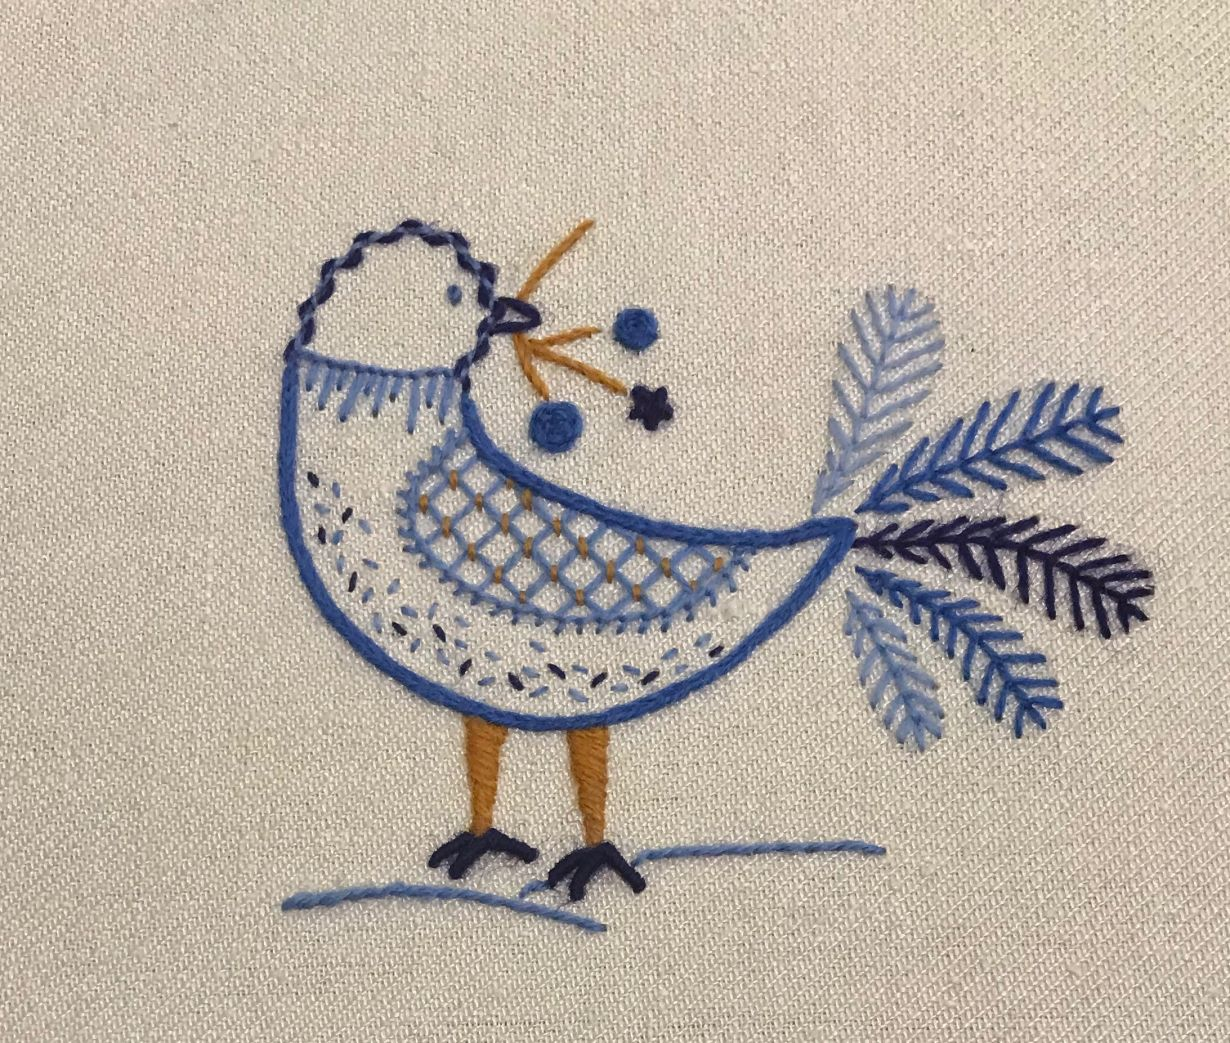 Postponed due to Covid 19 - RSN@Lancaster Crewelwork